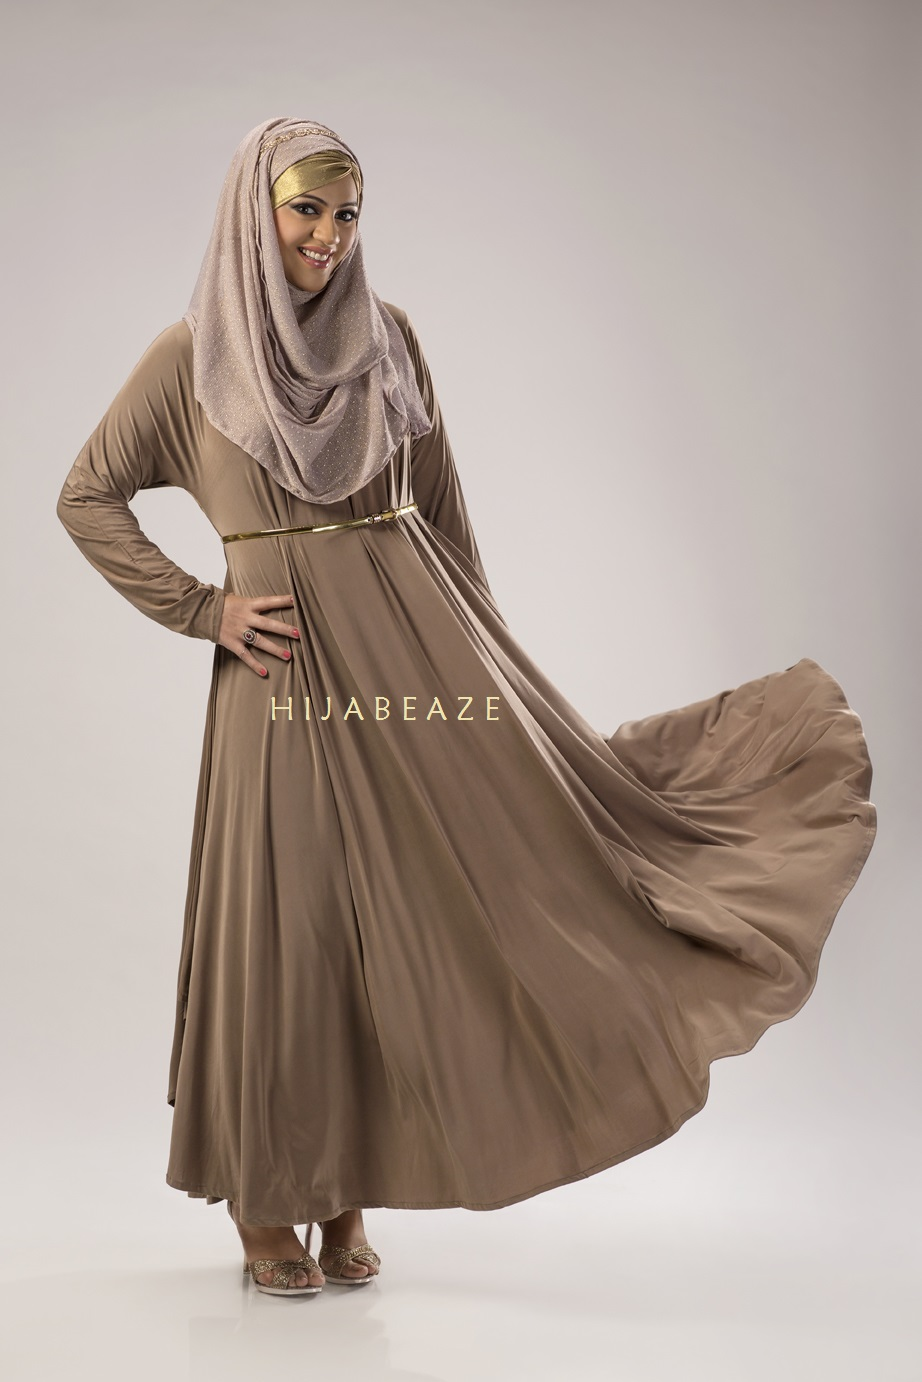 See Abbayas collection of Hijabeaze 2015 by Urooj Nasir